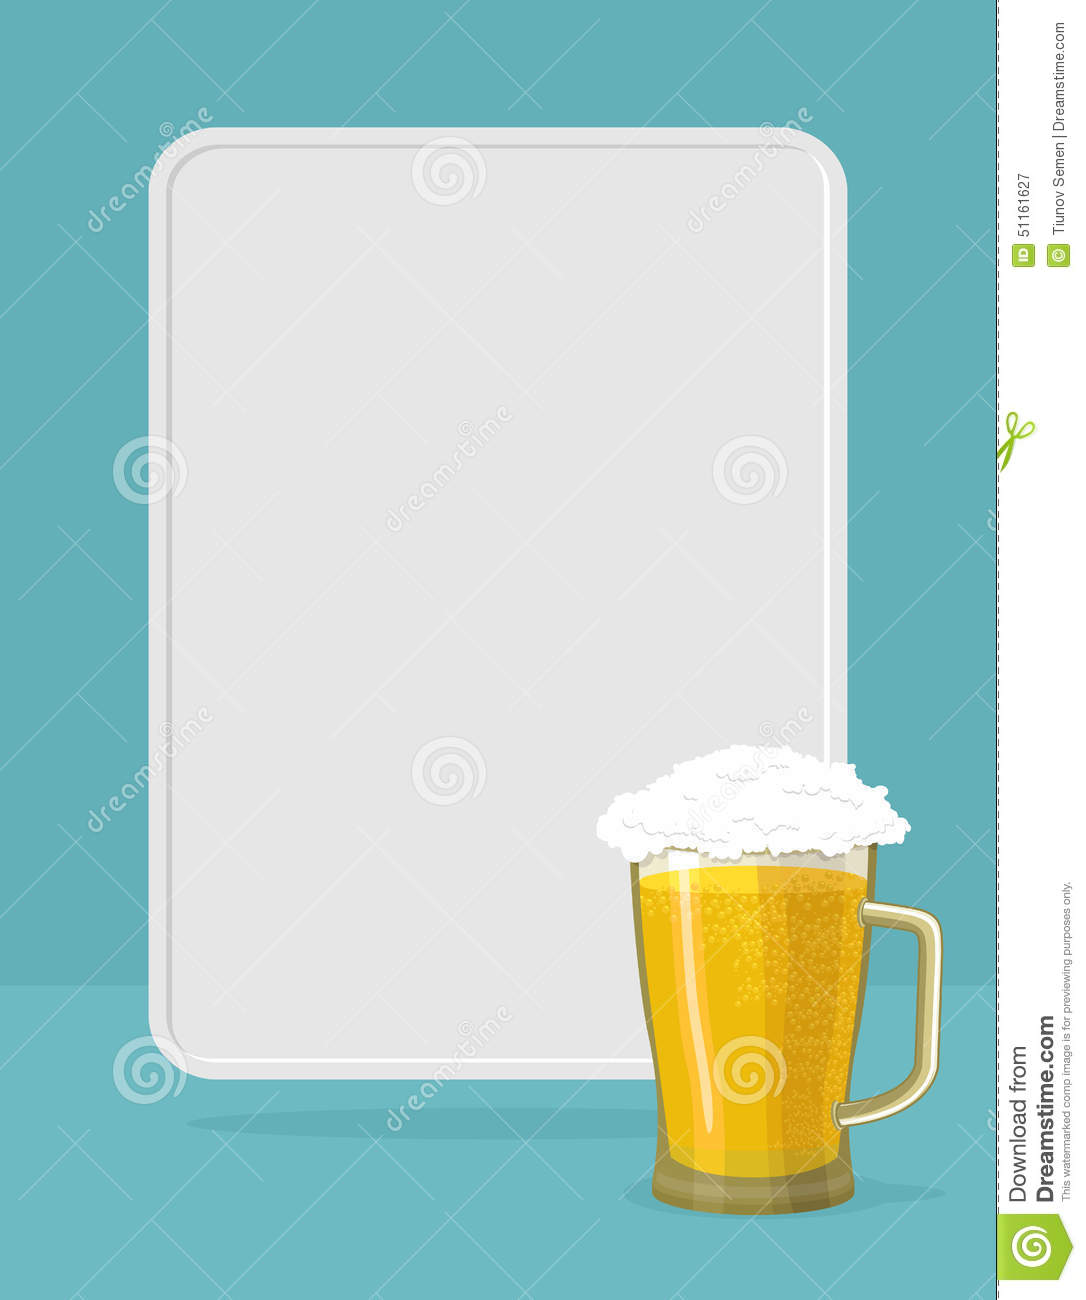 Beer Mug With Foam. Frame For Text. Stock Vector - Illustration of ...